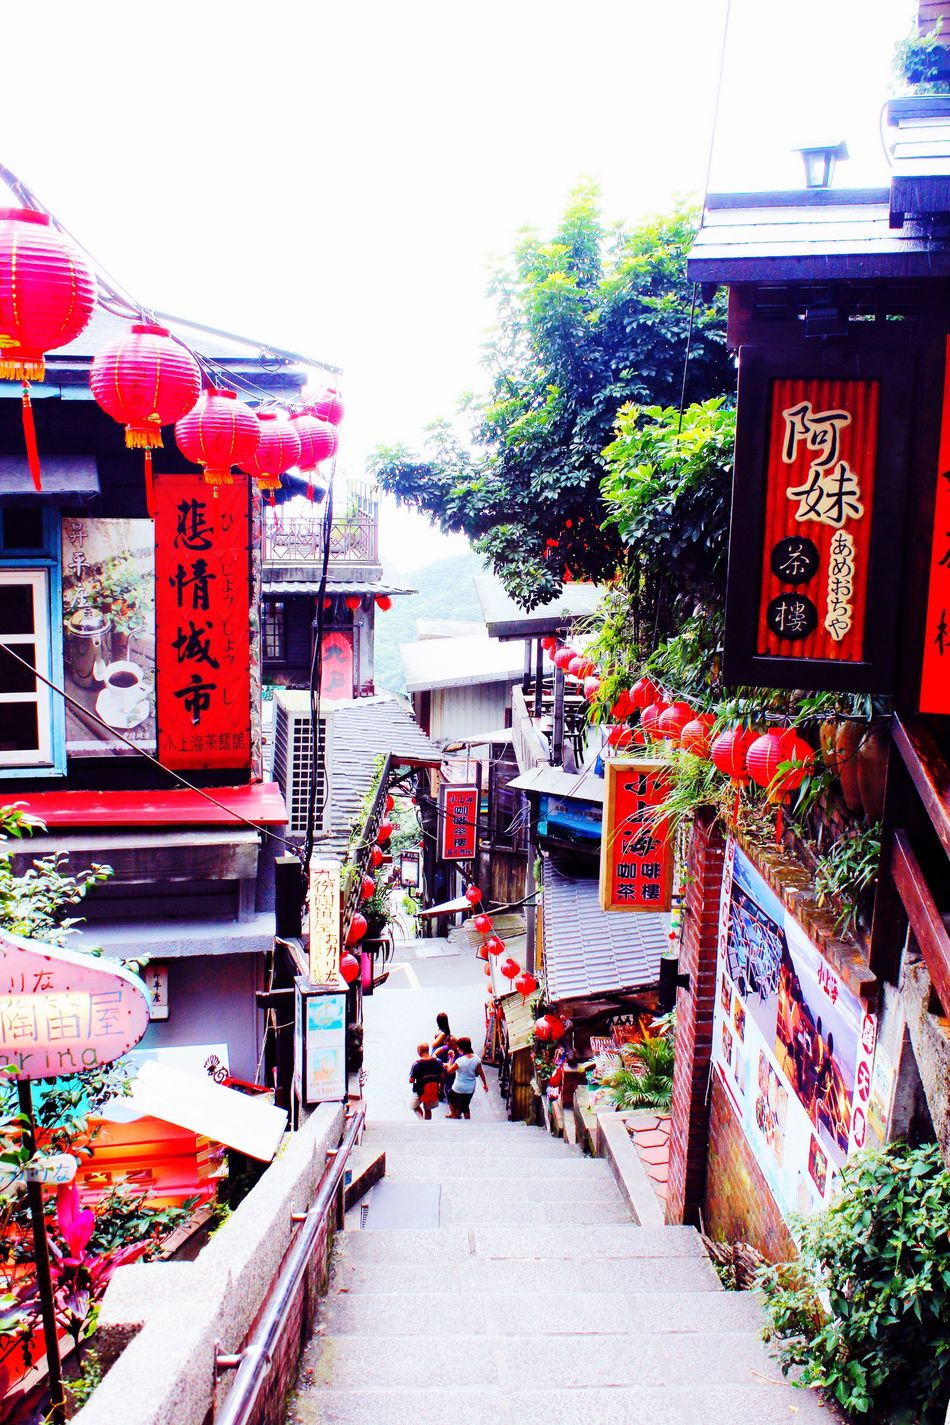 Flying High Chinese Lantern Travel Destinations Taiwan Jiufen Facing The Ocean Hilly Shops Japanese Style Walking Down The Stairs Stone Steps Split Level Hilly Flying High